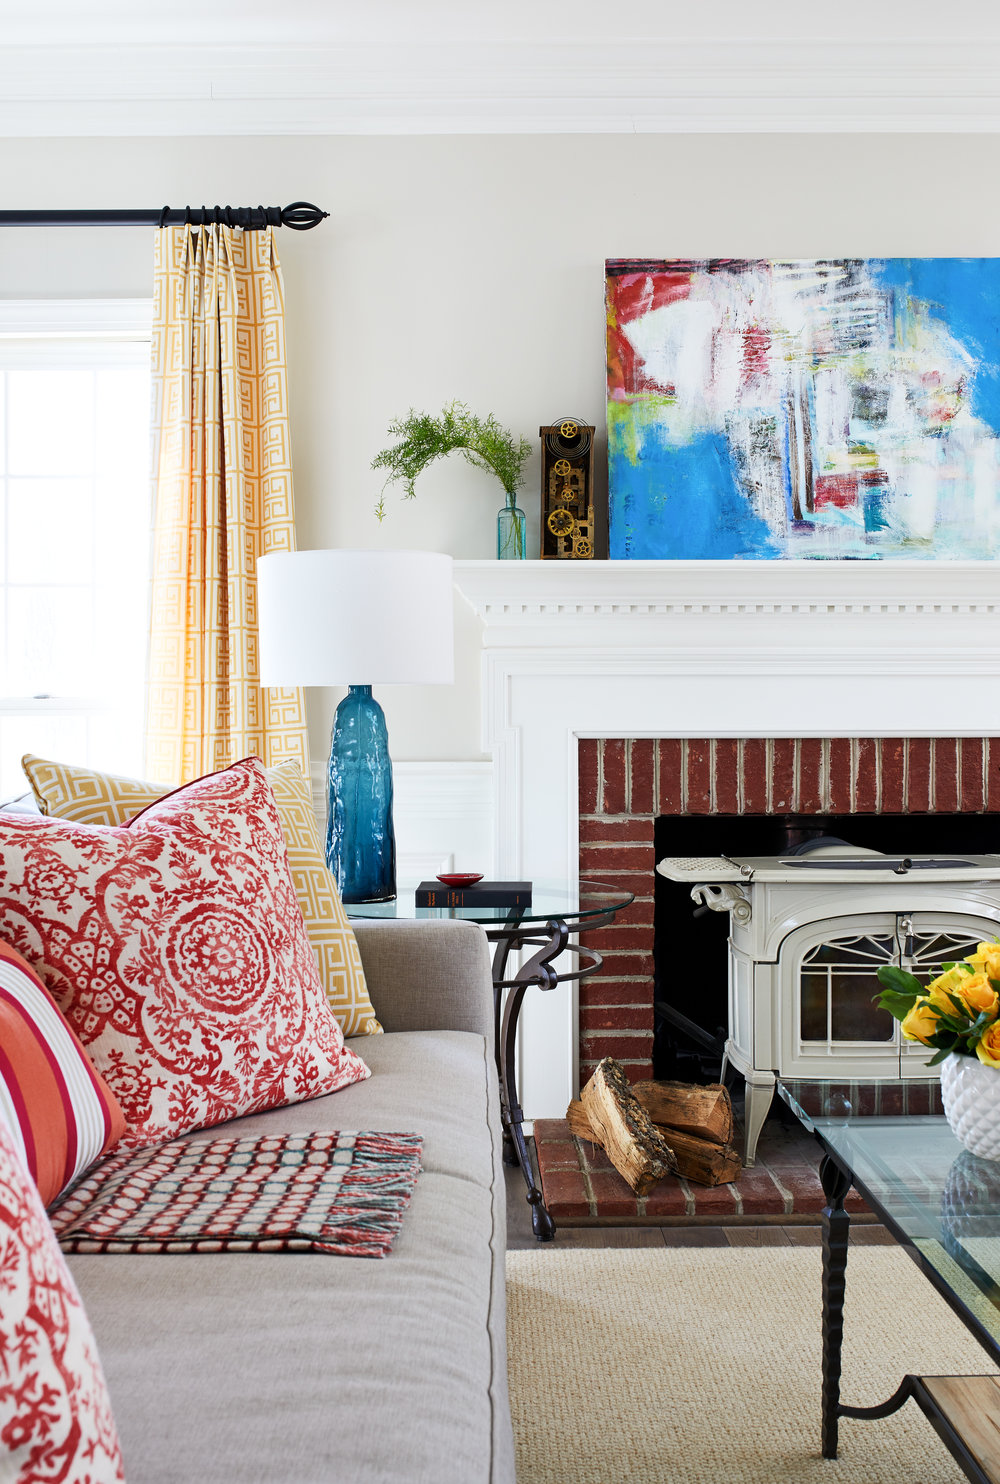 Colonial country house modern remodel. Fireplace with white enamel wood stove. Young family custom designed home. Functional, beautiful, and sustainable. Photo by Stacy Zarin Goldberg